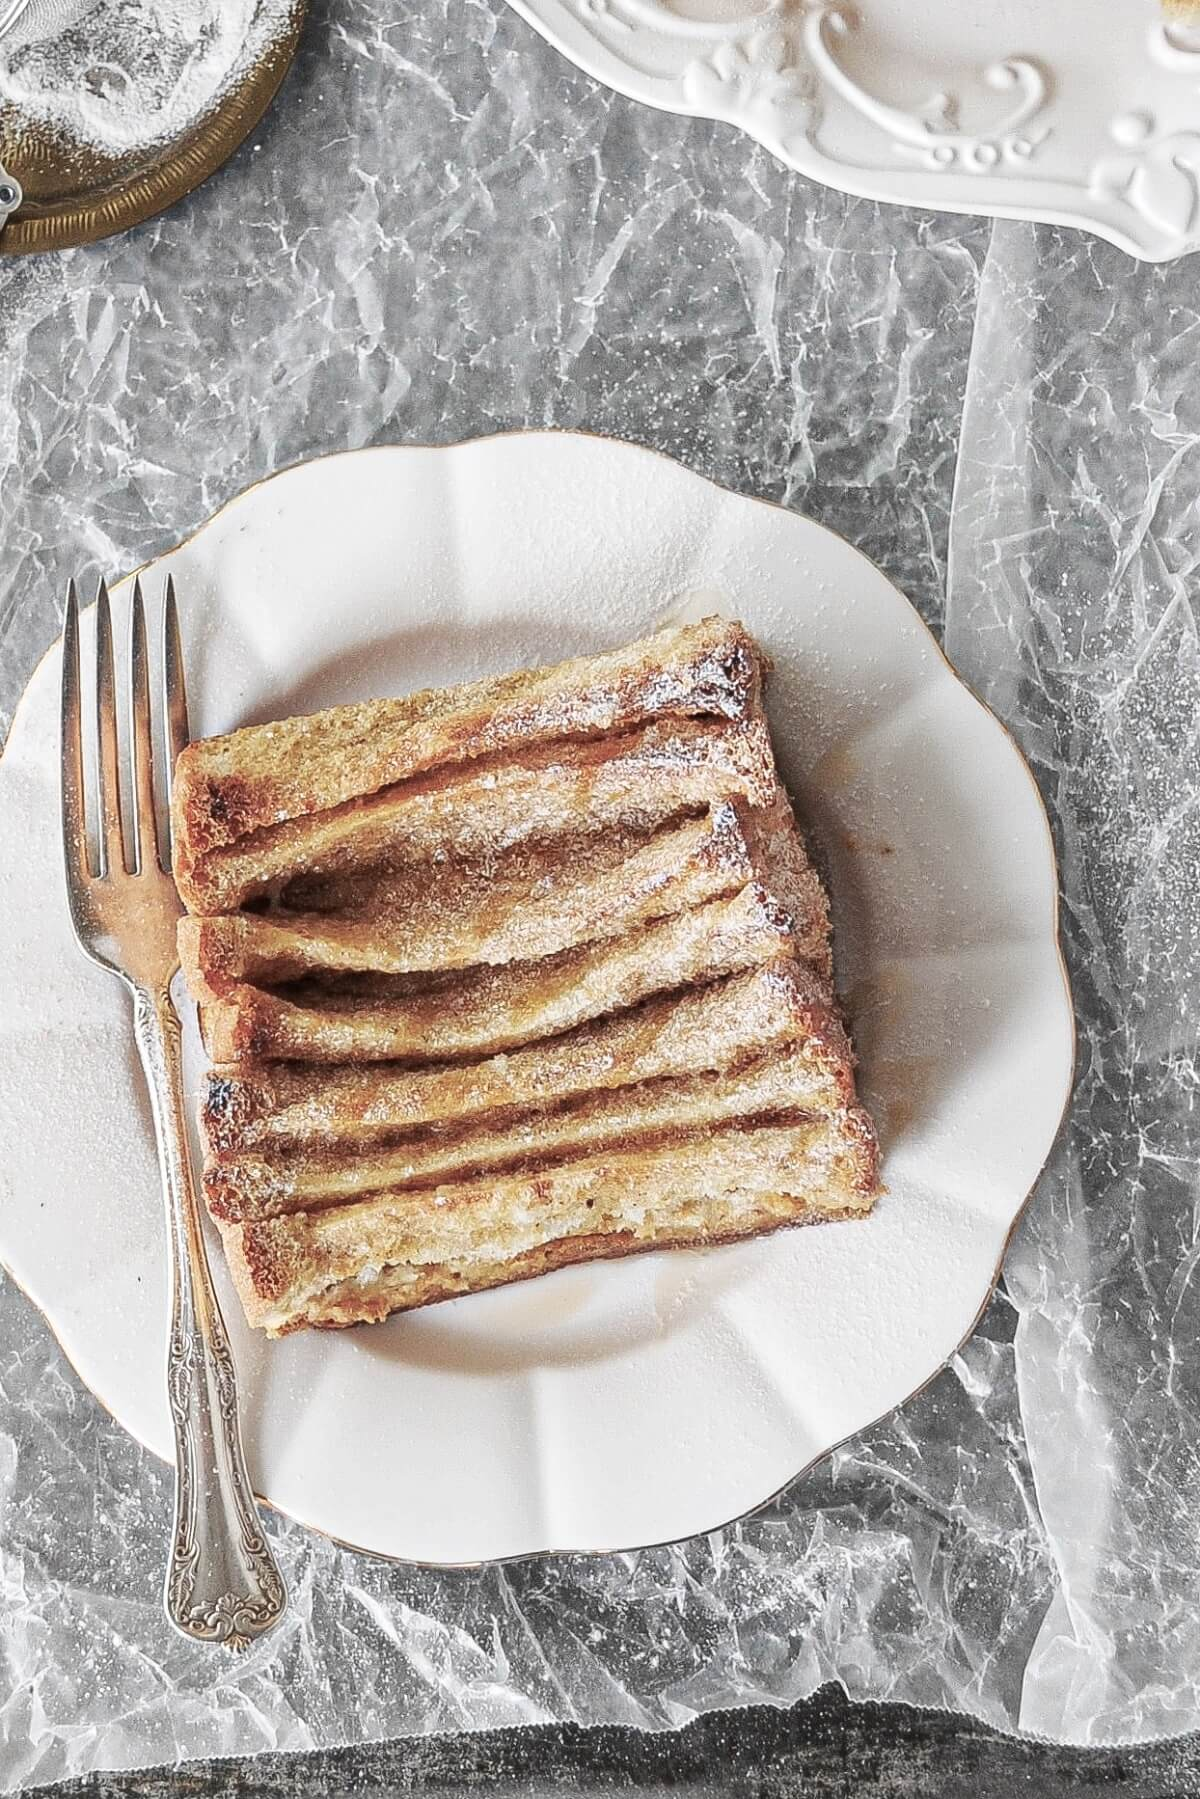 Baked overnight French toast, drizzled with syrup.